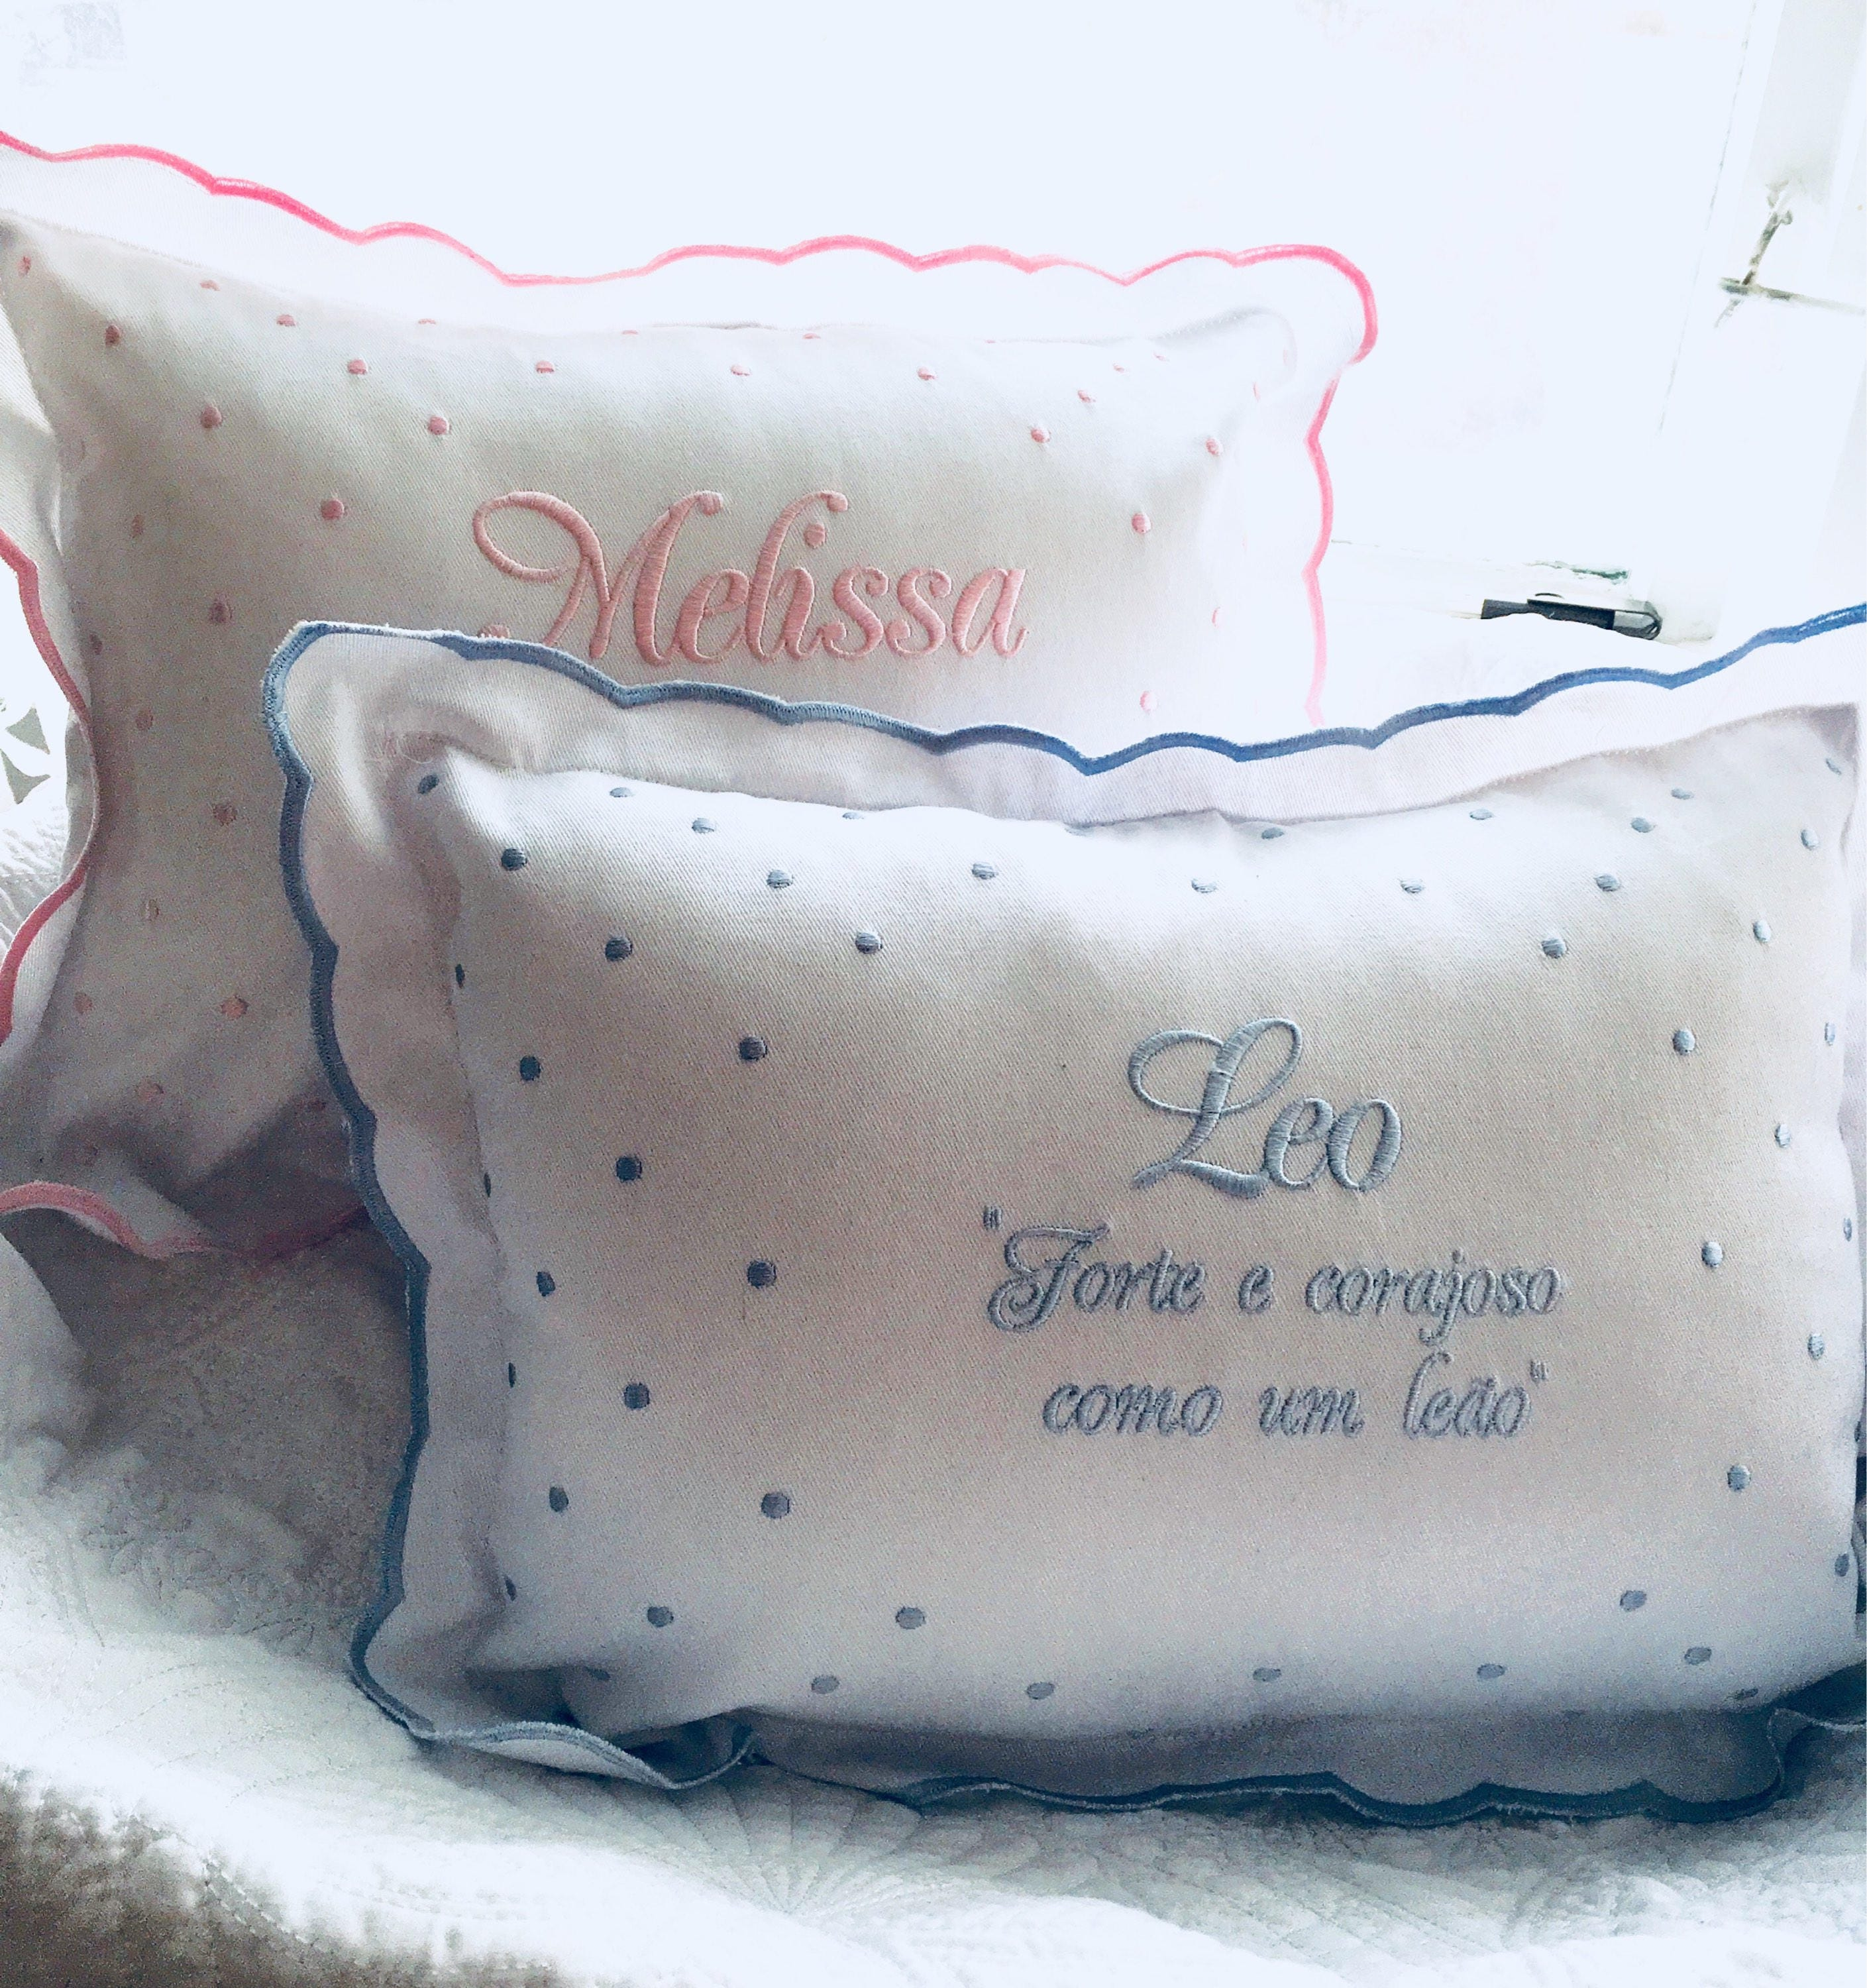 Personalized embroidered baby pillow personalized baby gift personalized embroidered baby pillow personalized baby gift keepsake shower pillows with sayings monogrammed pillows custom pillow negle Gallery